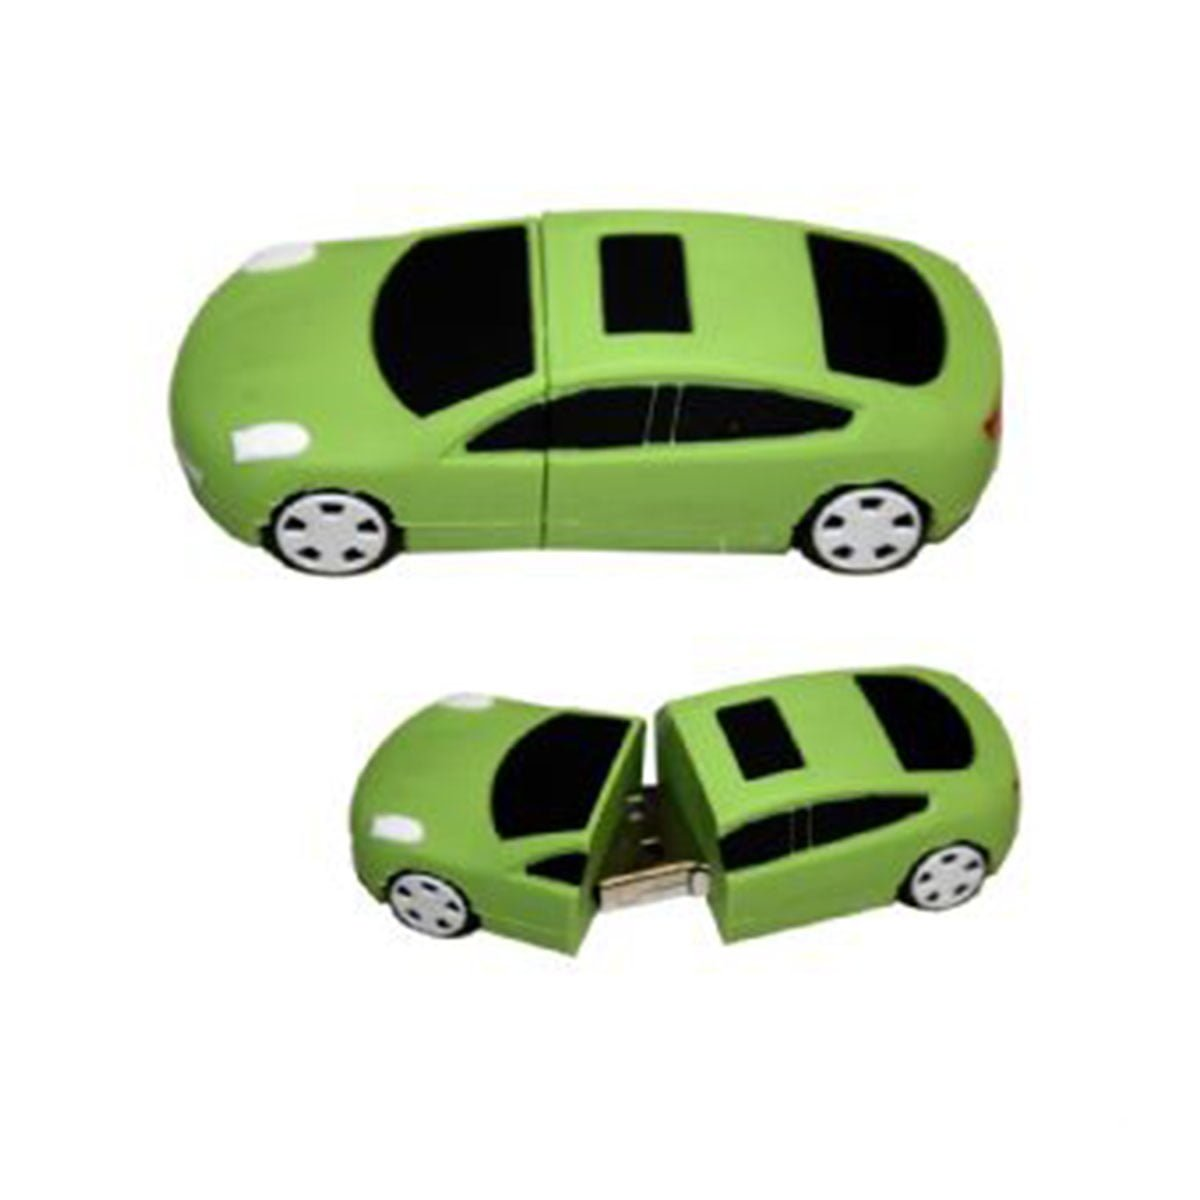 Car PVC Flash Drive-You can change up to 2 of the base PVC colours and print your logo in 1-2 colours in 1 position.